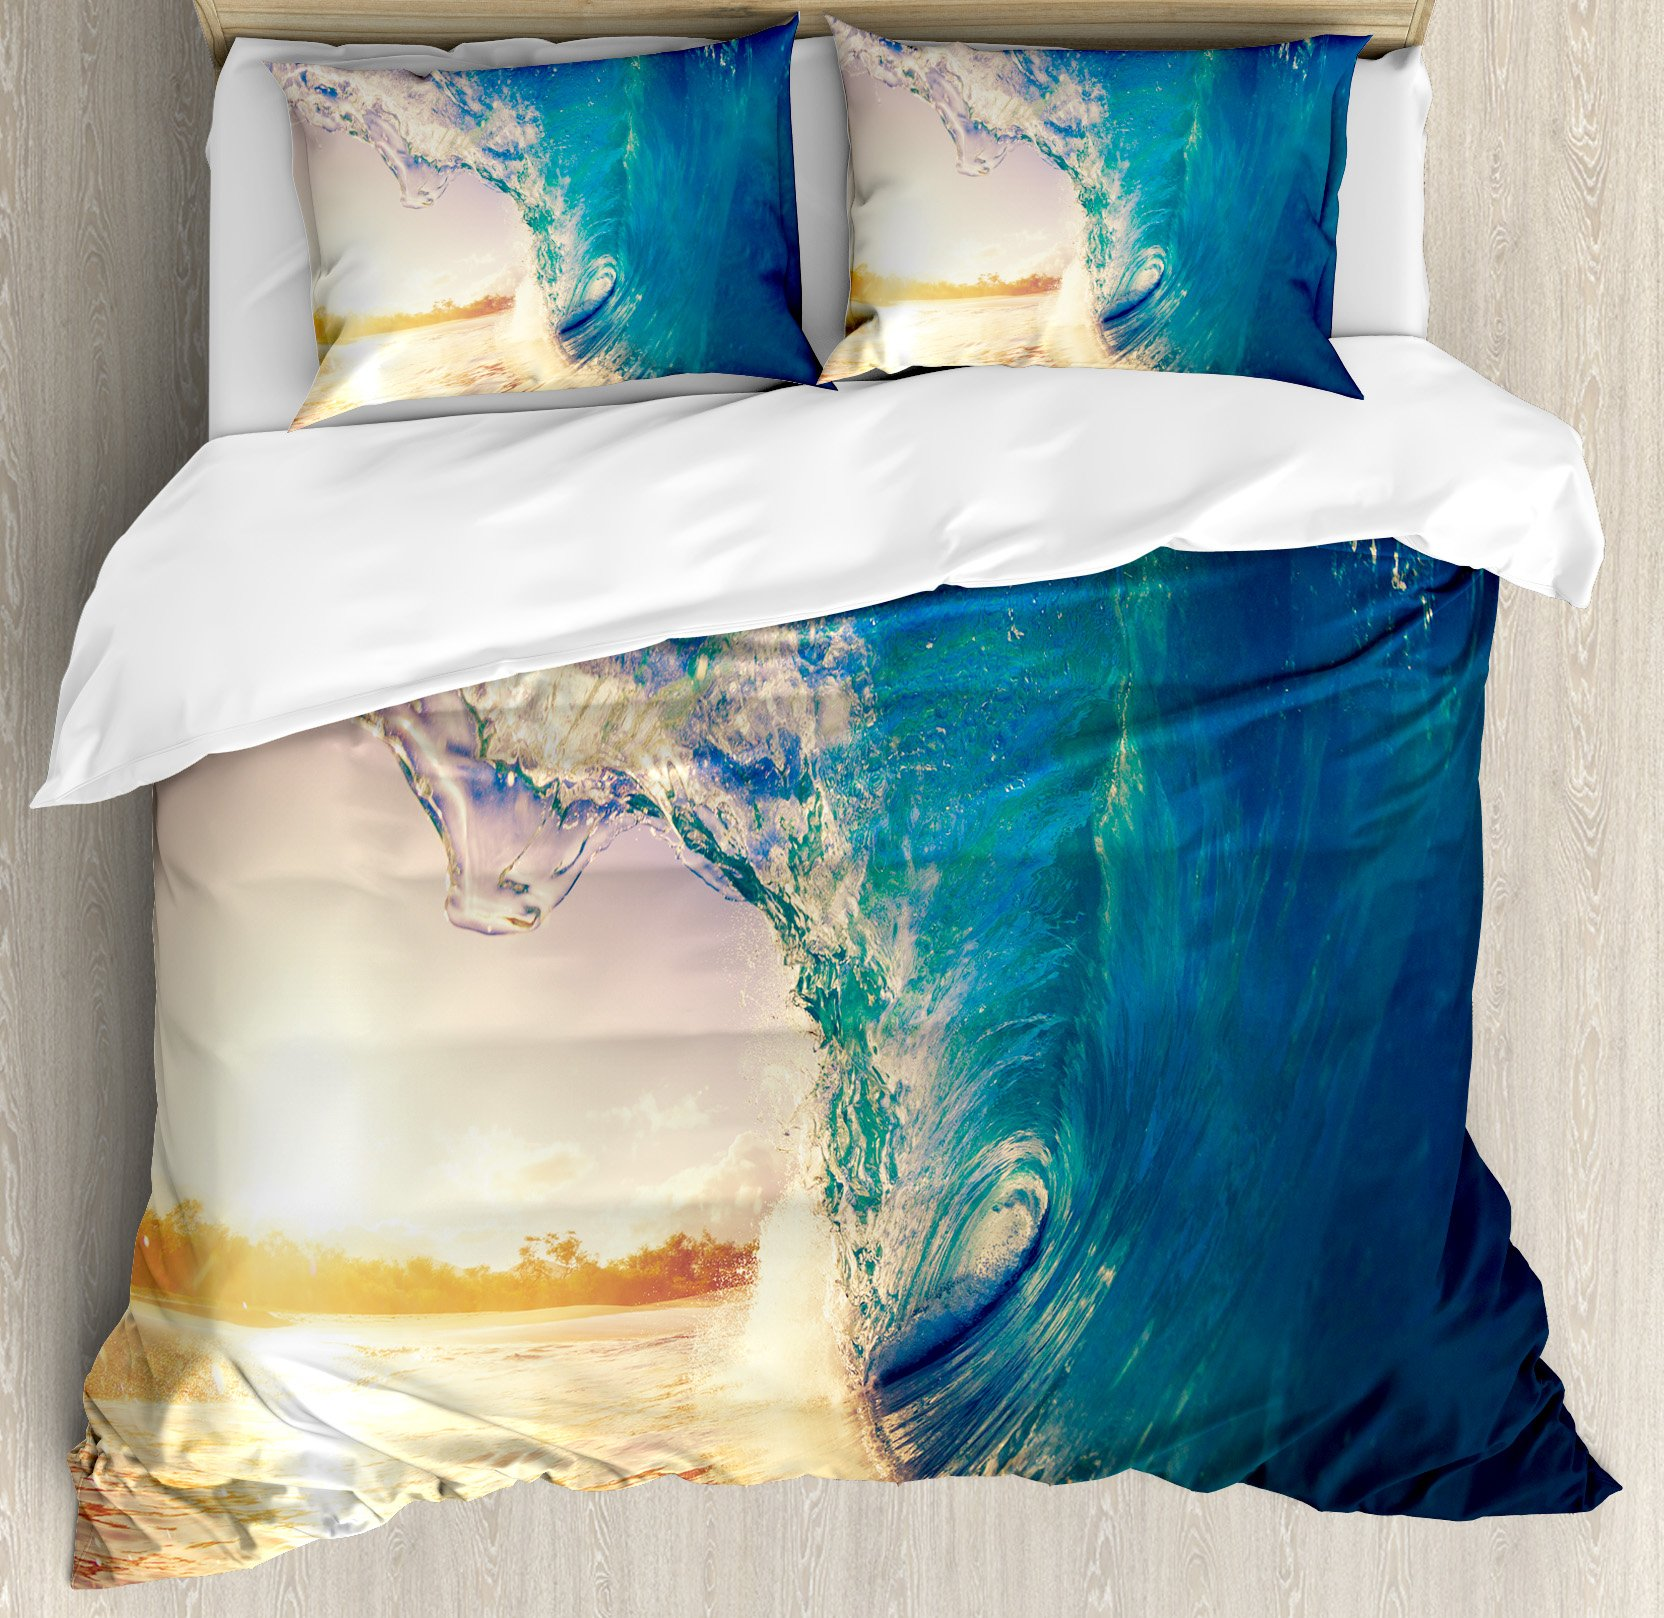 Ambesonne Ocean Duvet Cover Set King Size, Ocean Wave at Sunrise Reflection on Surface Tropical Trees Shoreline Summer Picture, Decorative 3 Piece Bedding Set with 2 Pillow Shams, Teal Yellow